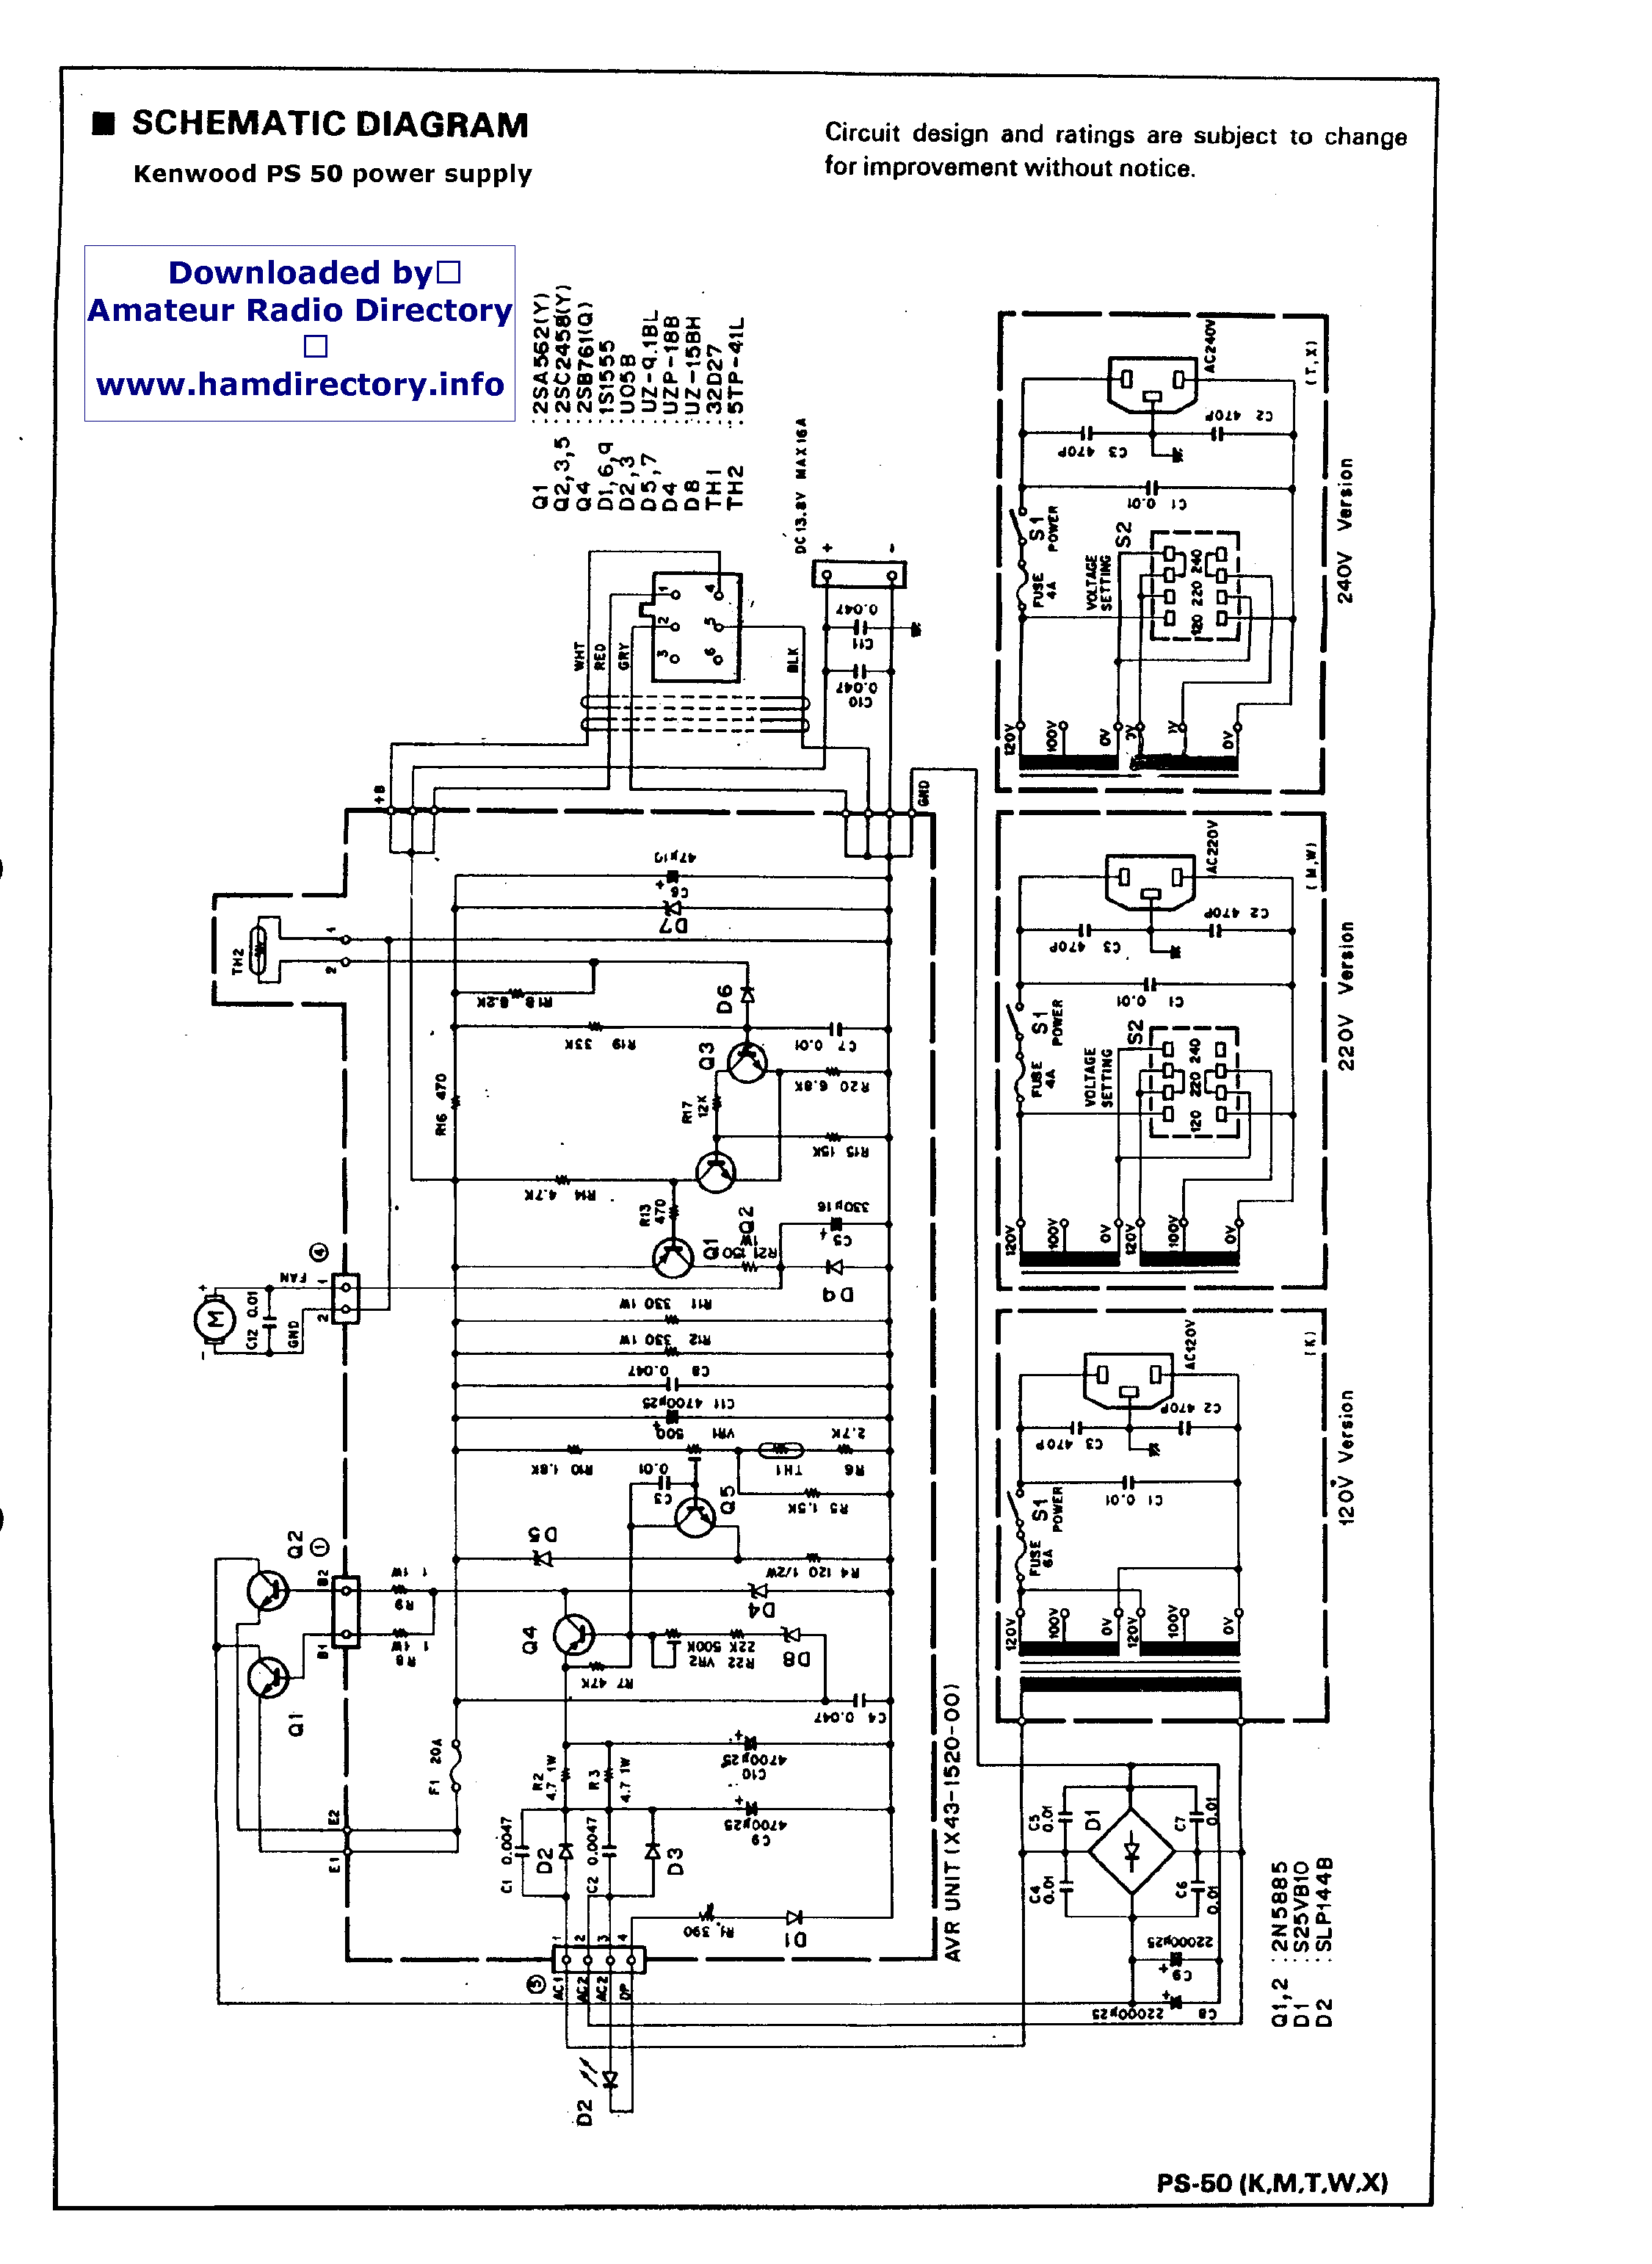 kenwood ps 50 power supply schematic